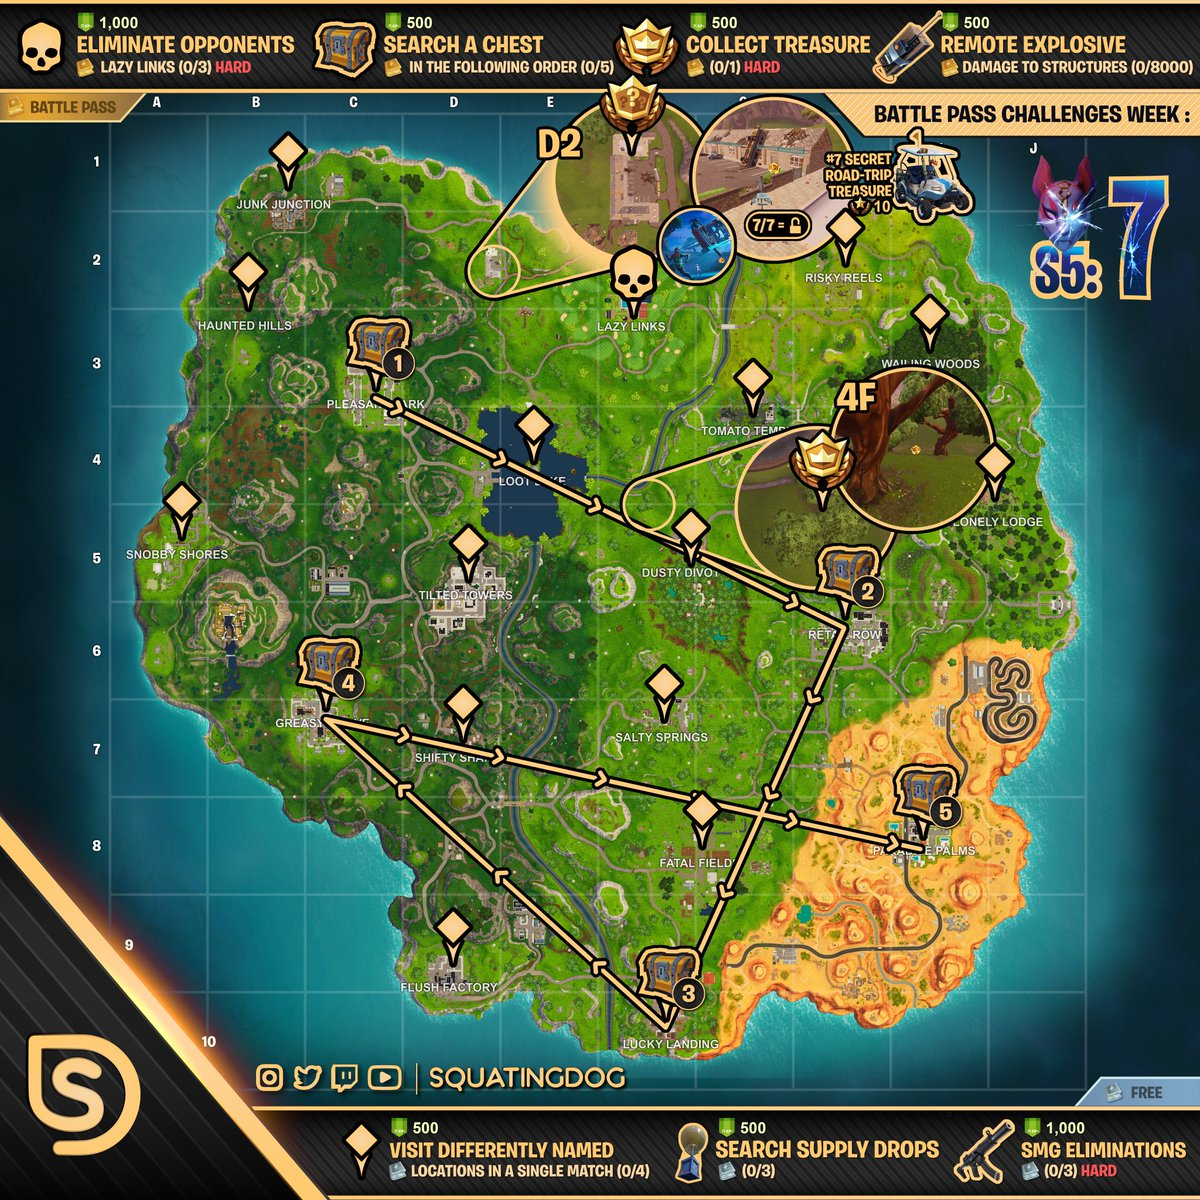 Cheat Sheet Map For Fortnite Battle Royale Season 5 Week 7